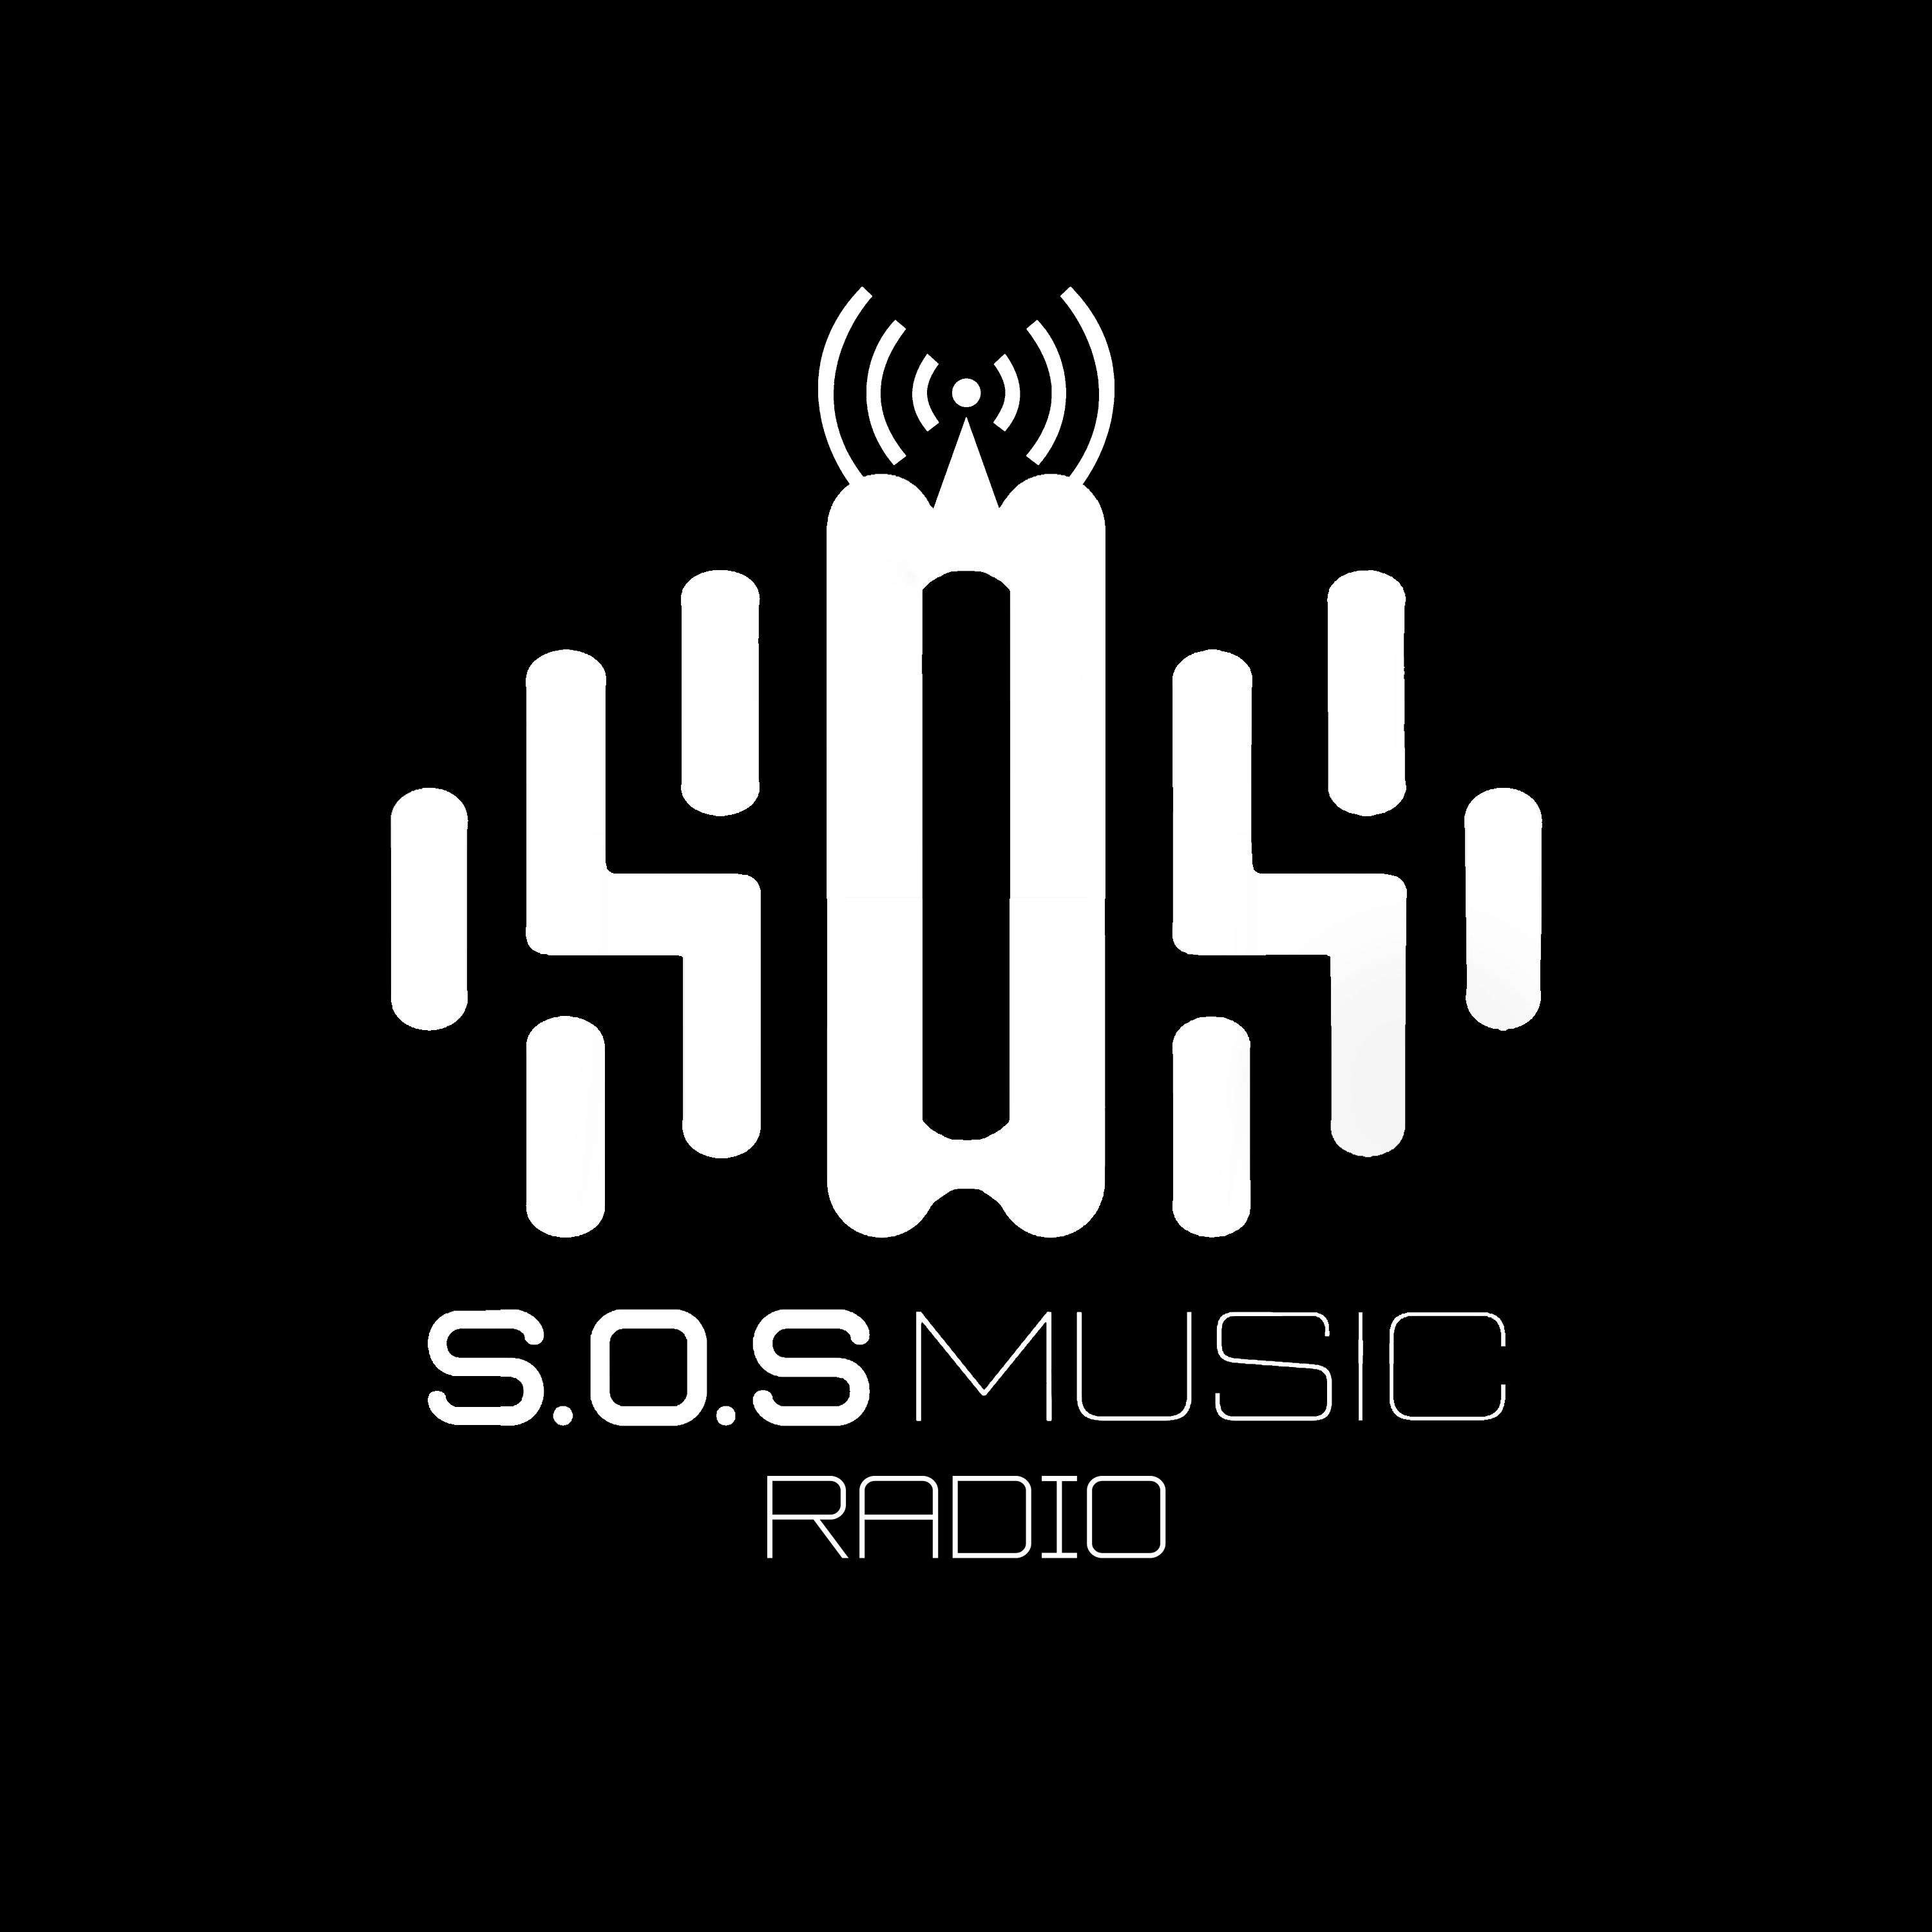 S.O.S Music & Productions